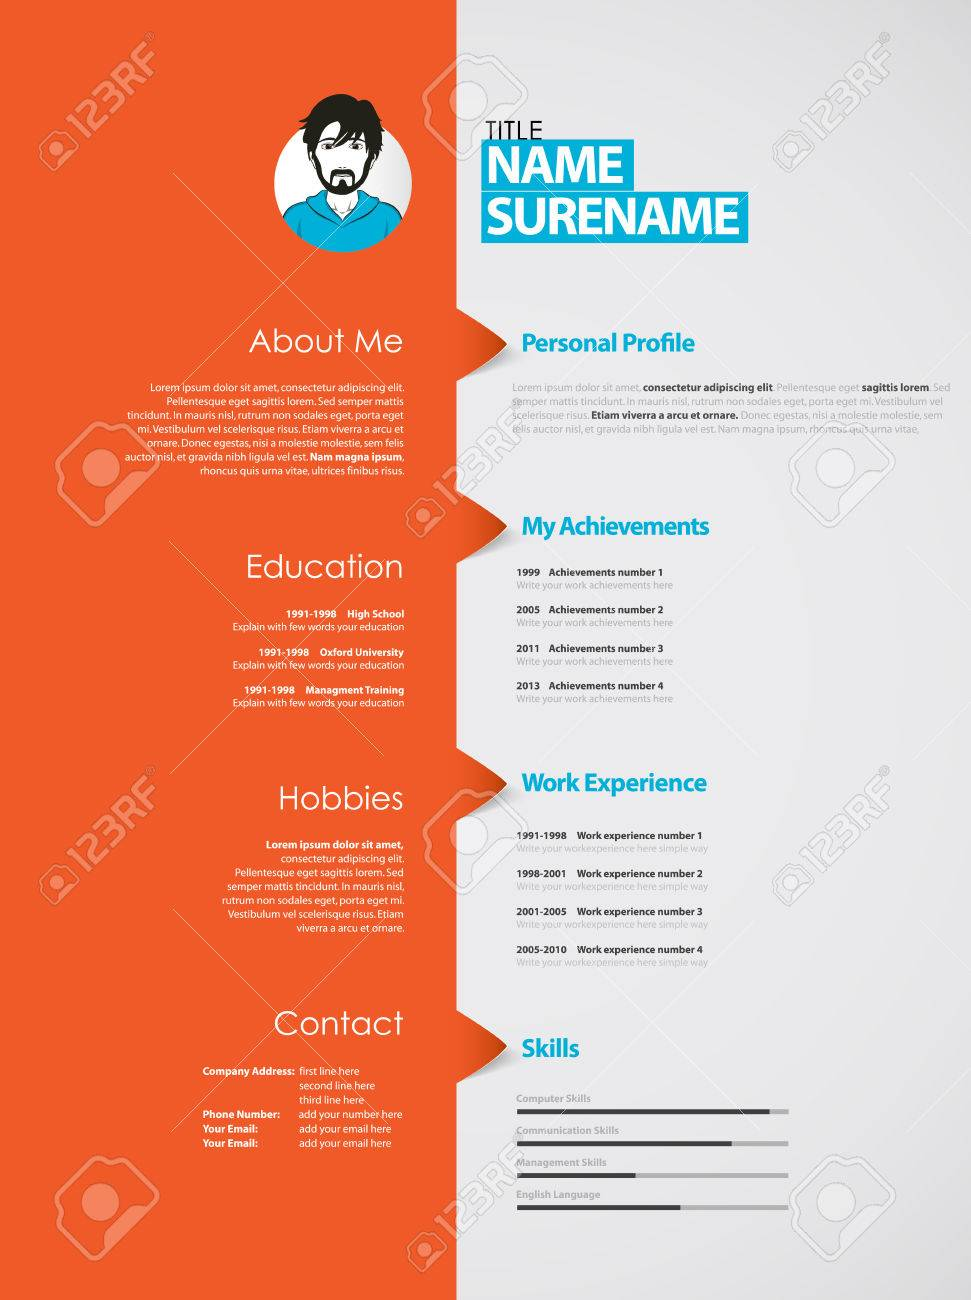 creative curriculum vitae template with orange stripe royalty free